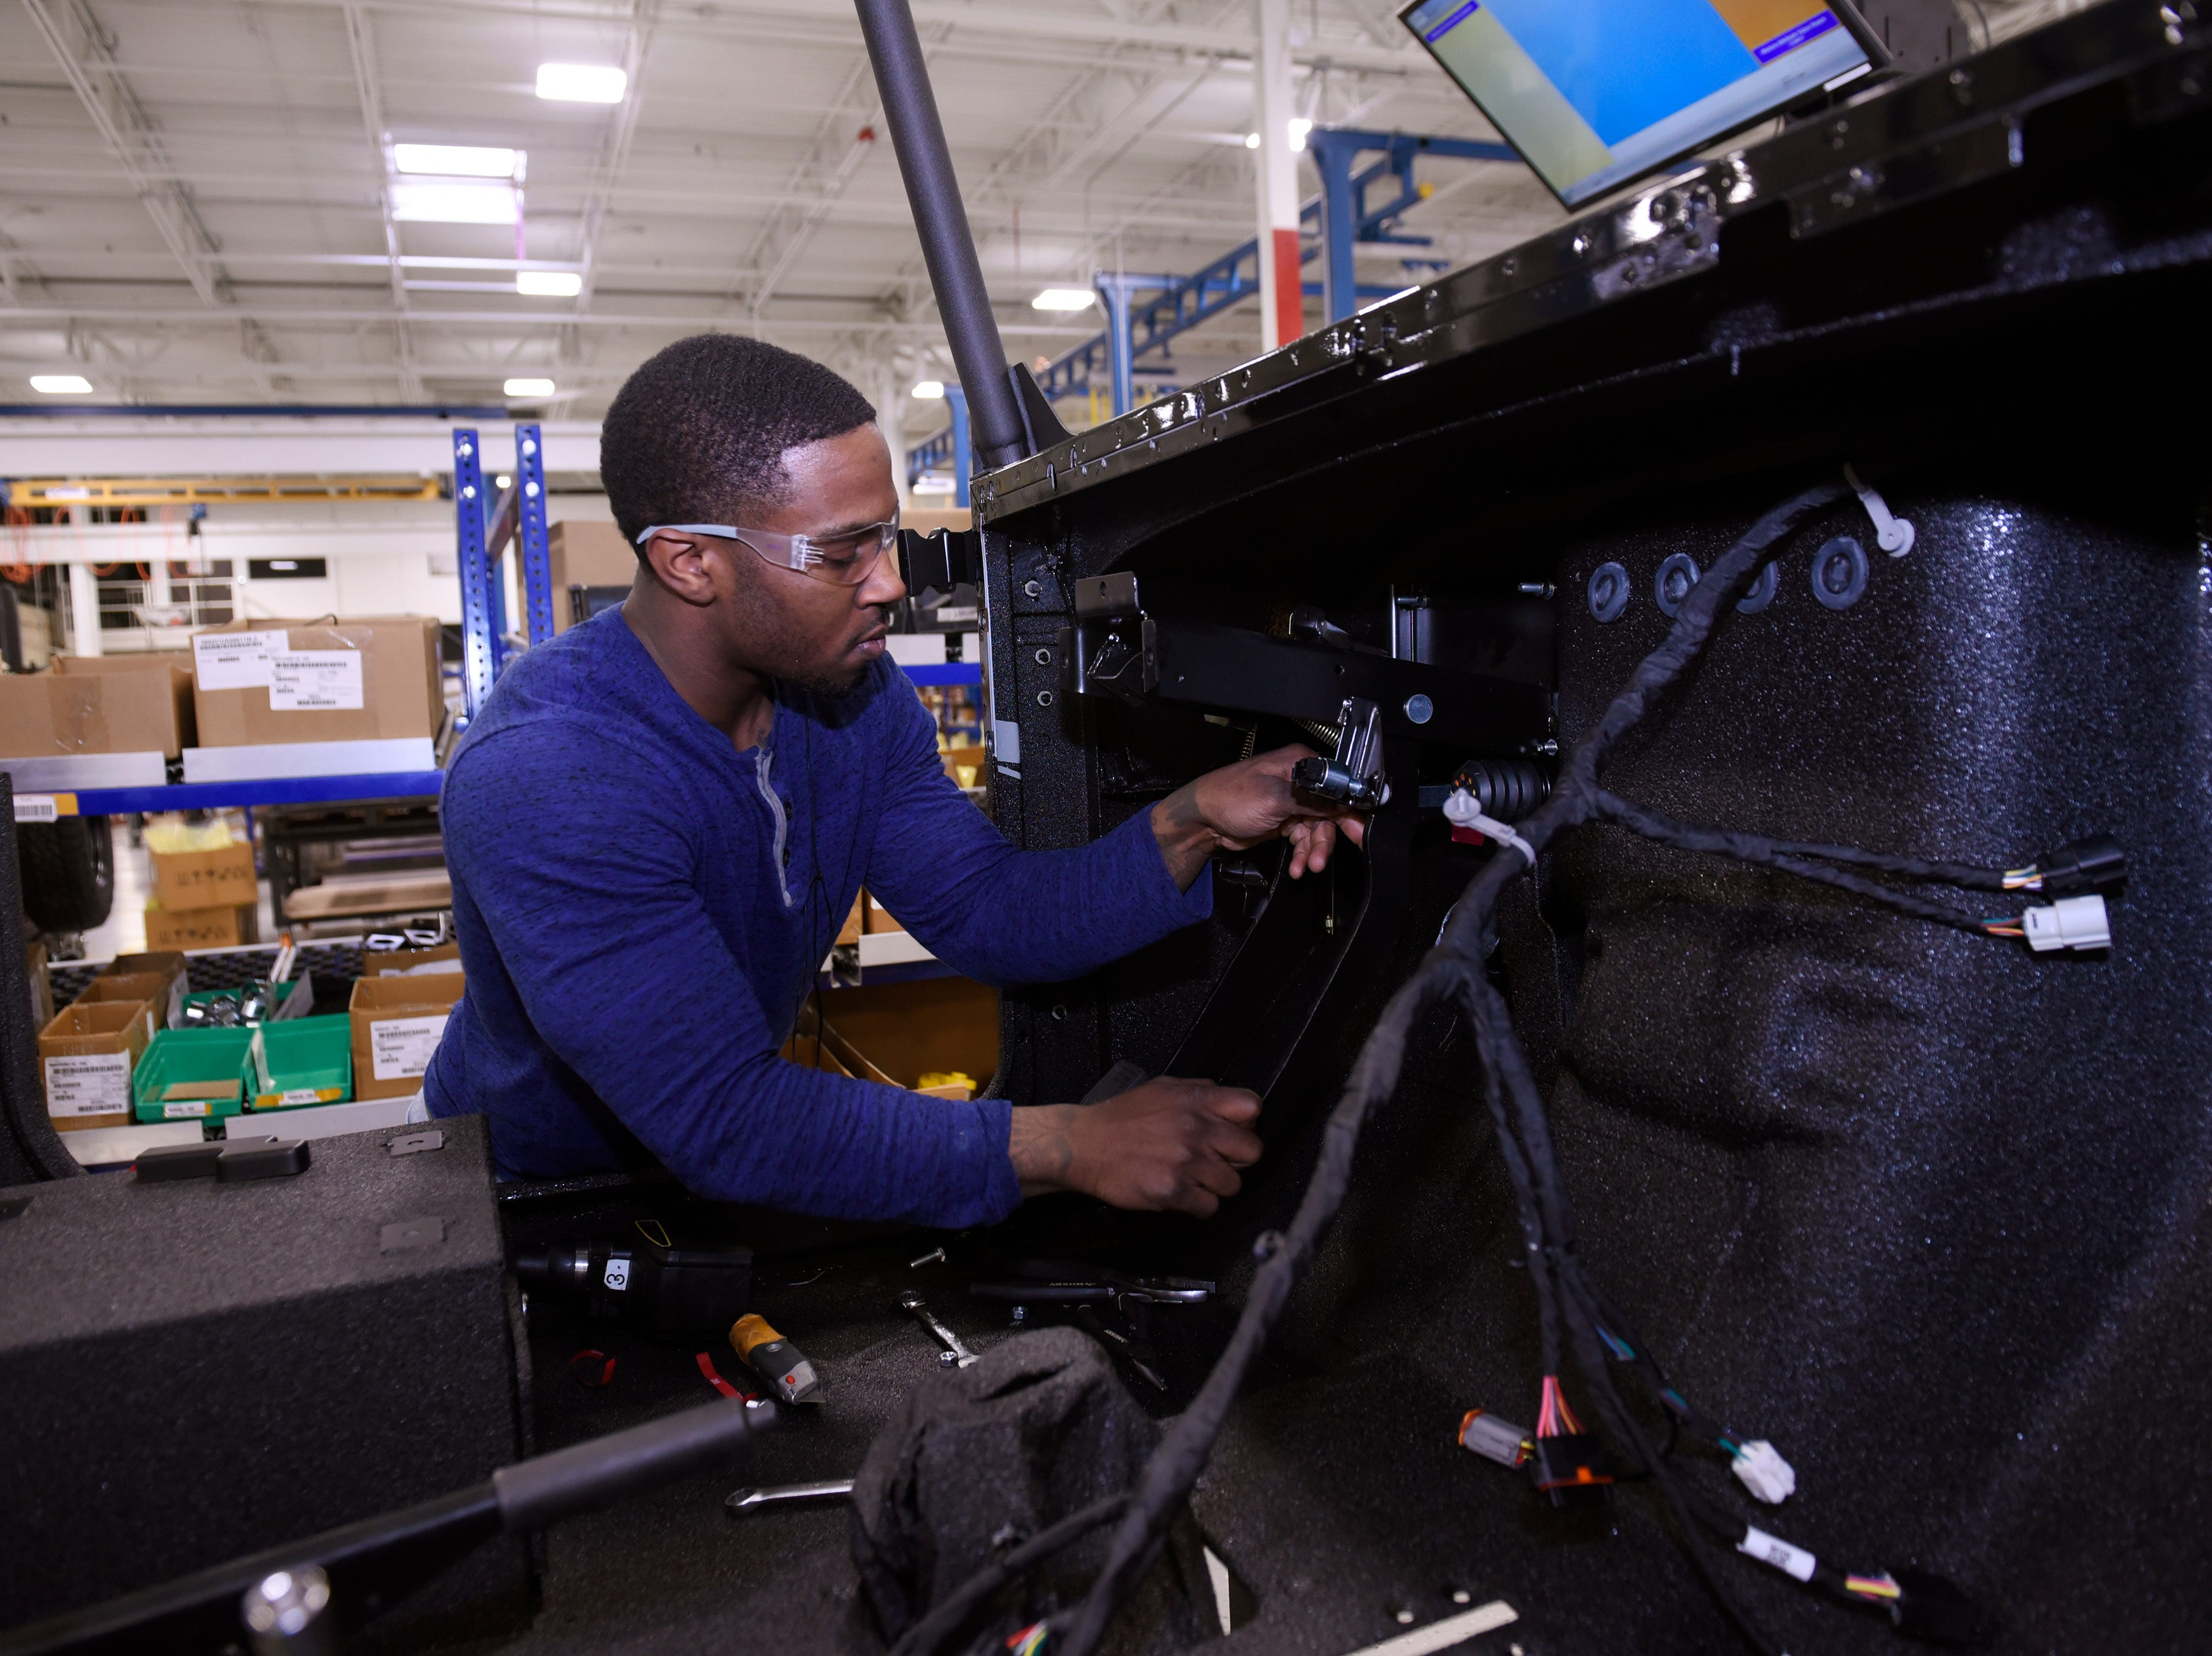 Jeremy Chambers, 27, installs gas and brake pedals during production at the Mahindra automotive plant in Auburn Hills, March 4, 2019.